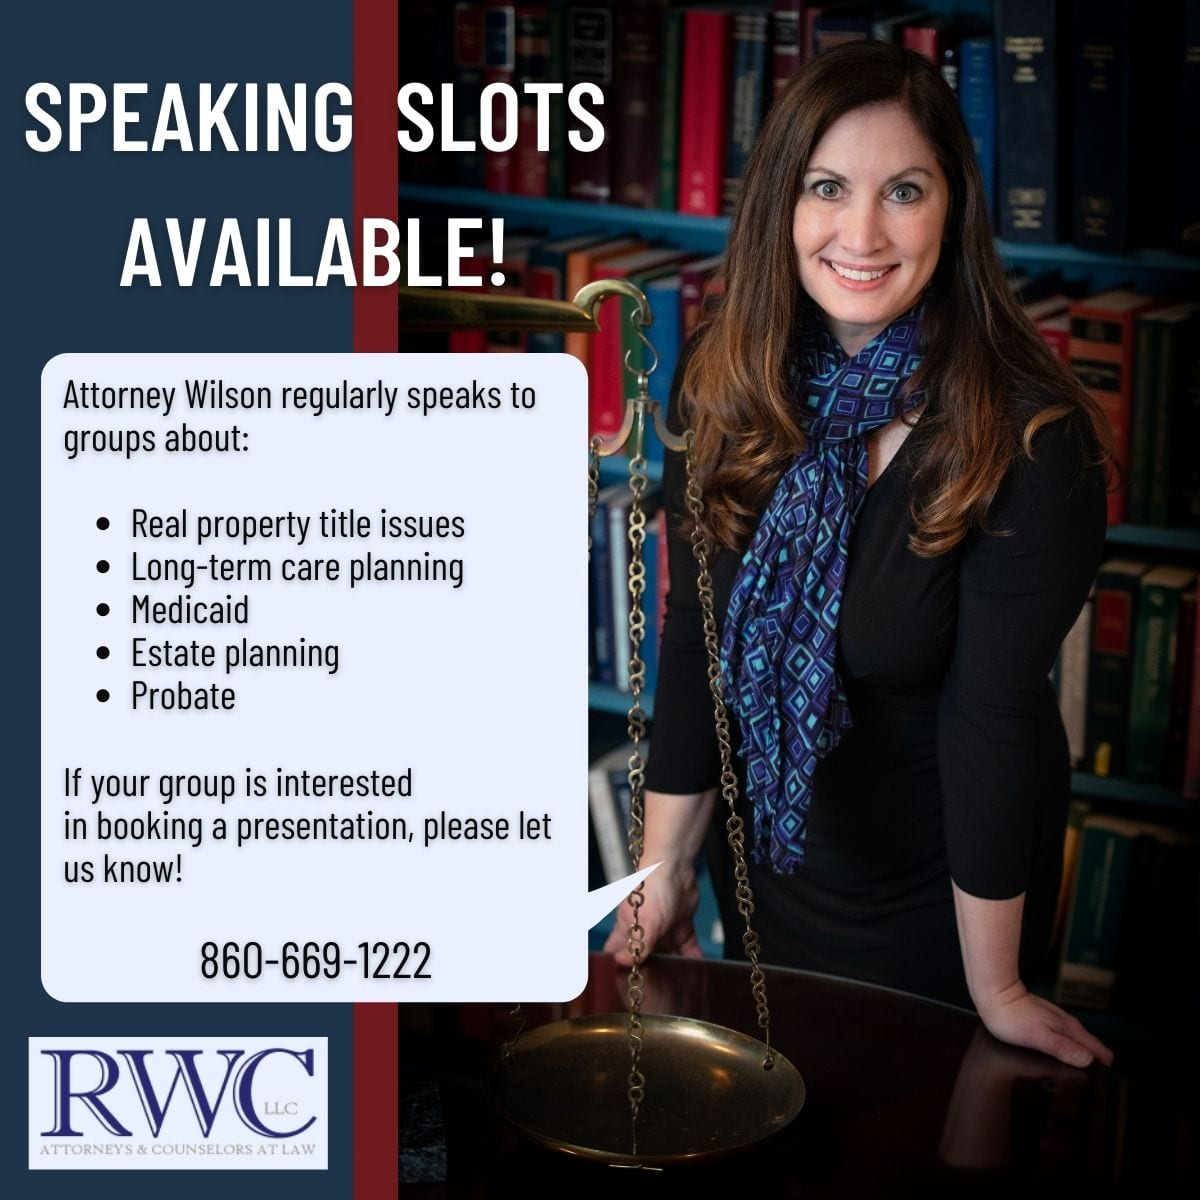 speaking slots available with attorney Wilson